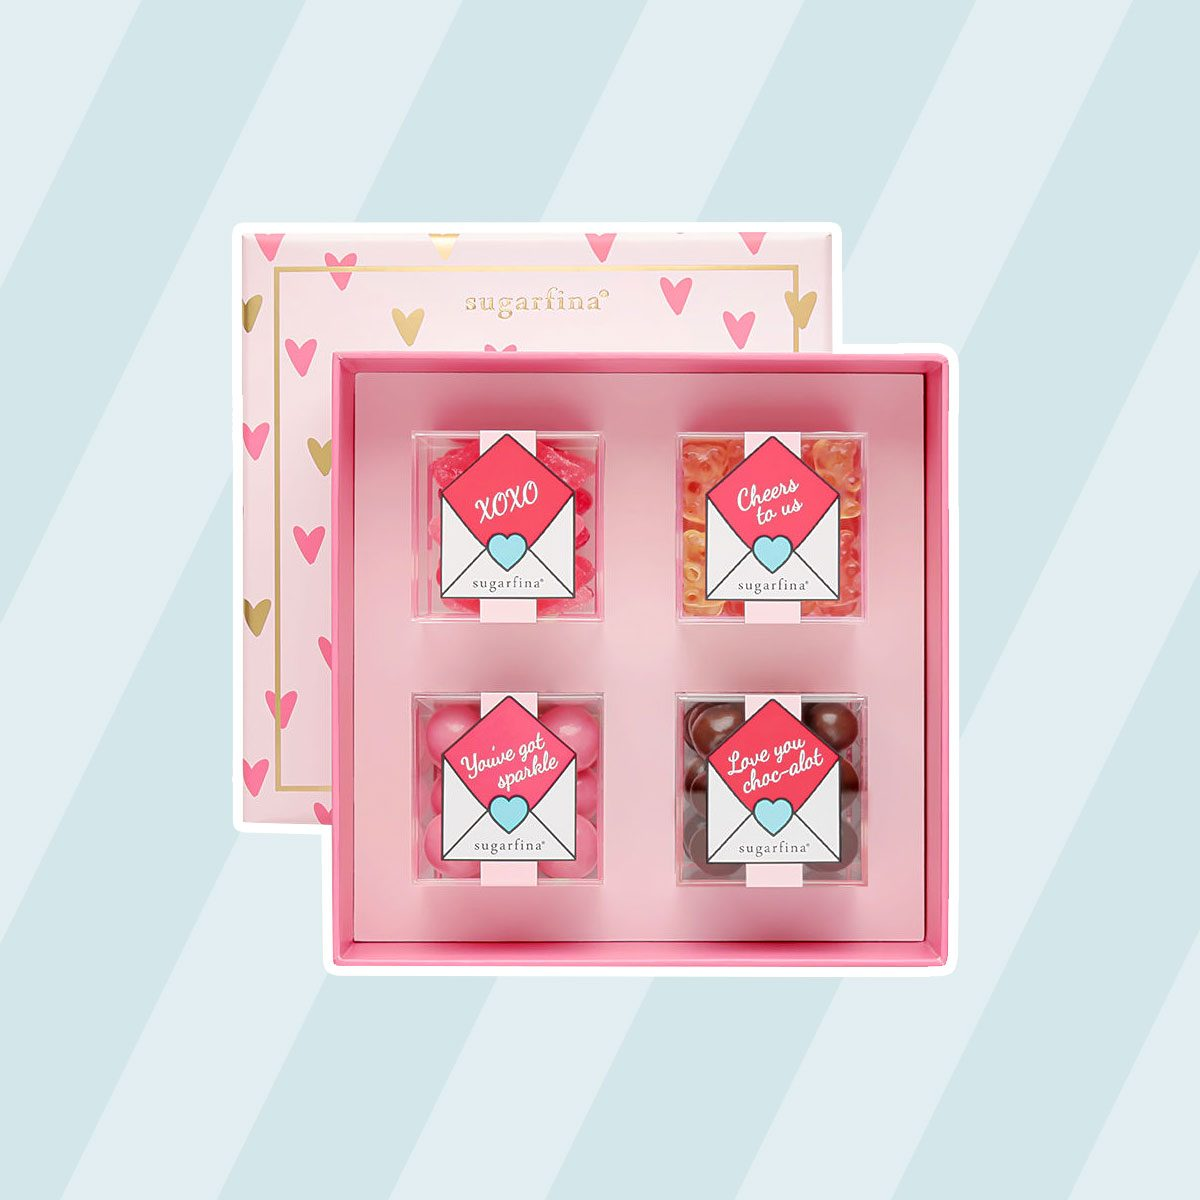 Sugarfina Xoxo Candy Bento Box